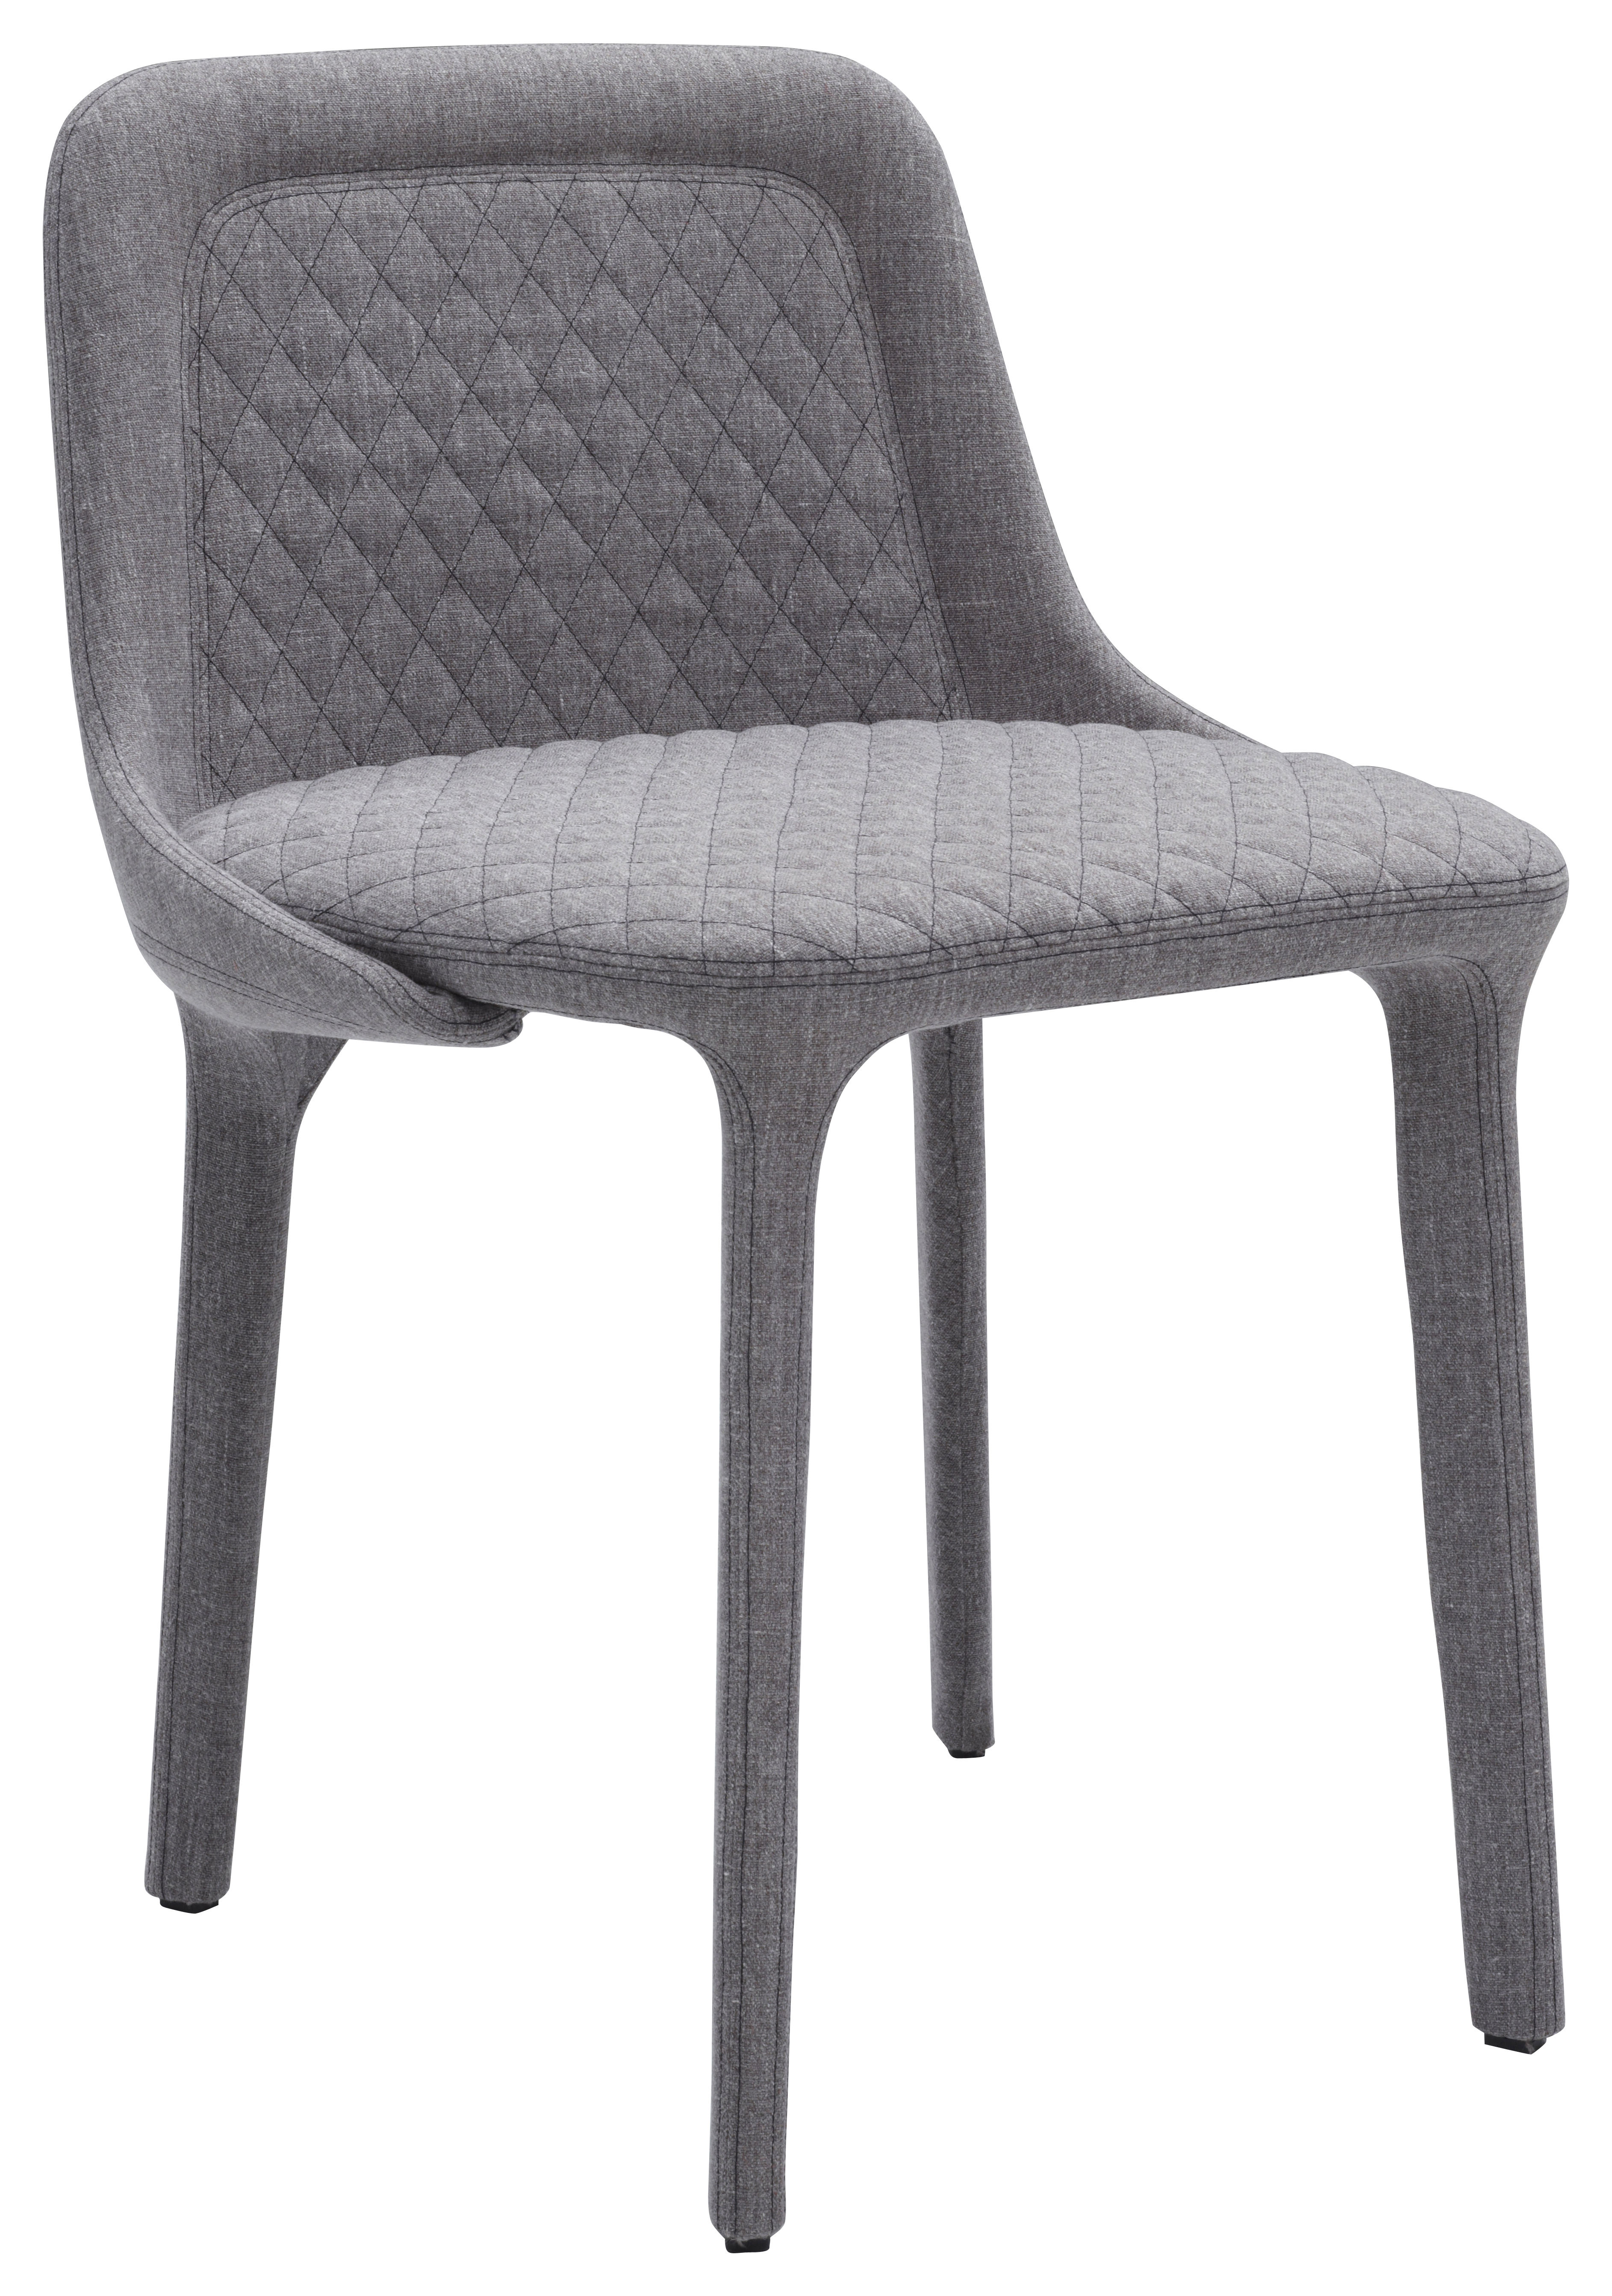 Chaise Rembourree Lepel Tissu Matelasse Willow Gris